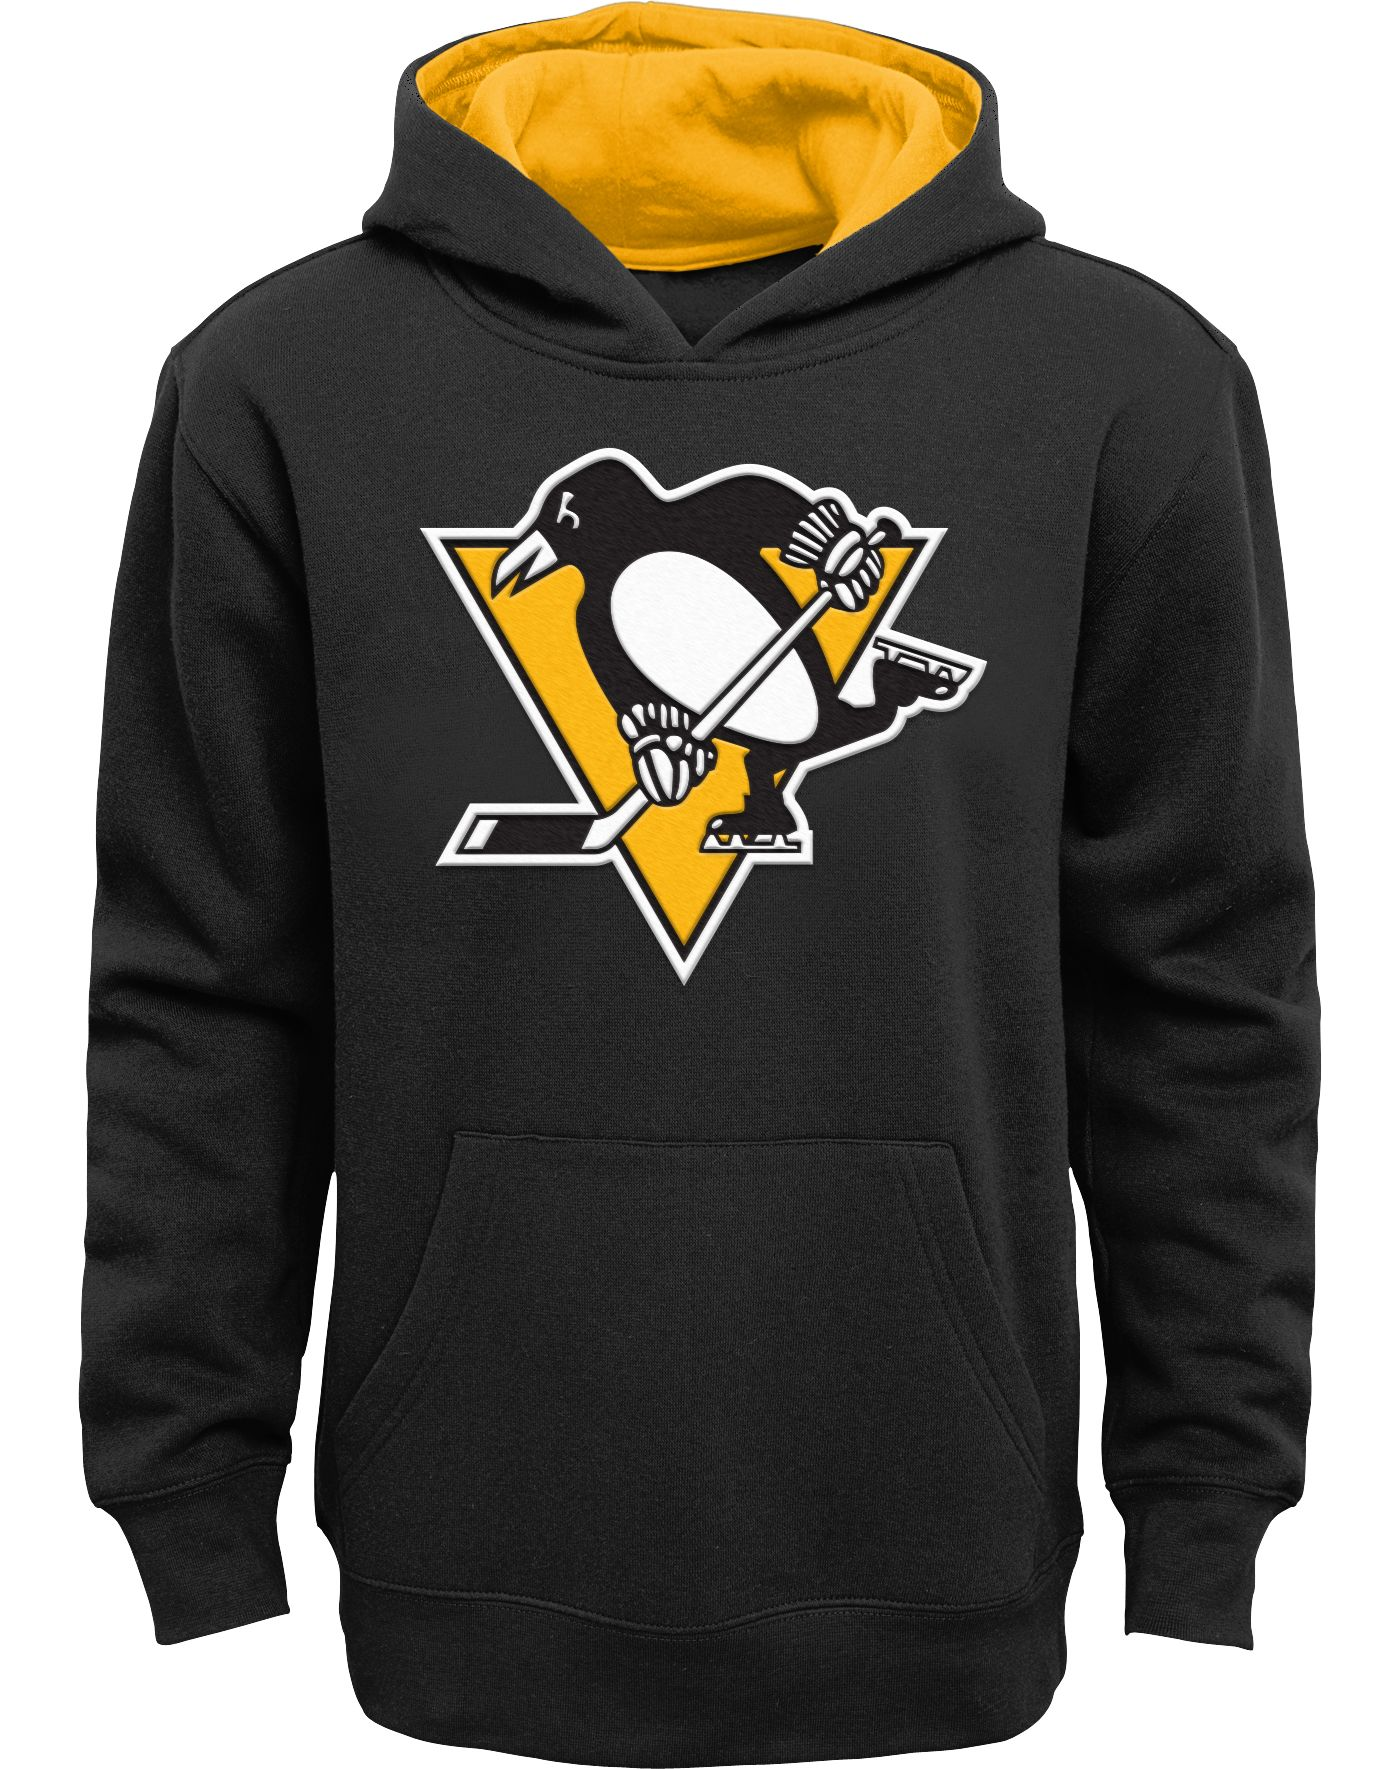 NHL Youth Pittsburgh Penguins Prime Fleece Black Pullover Hoodie